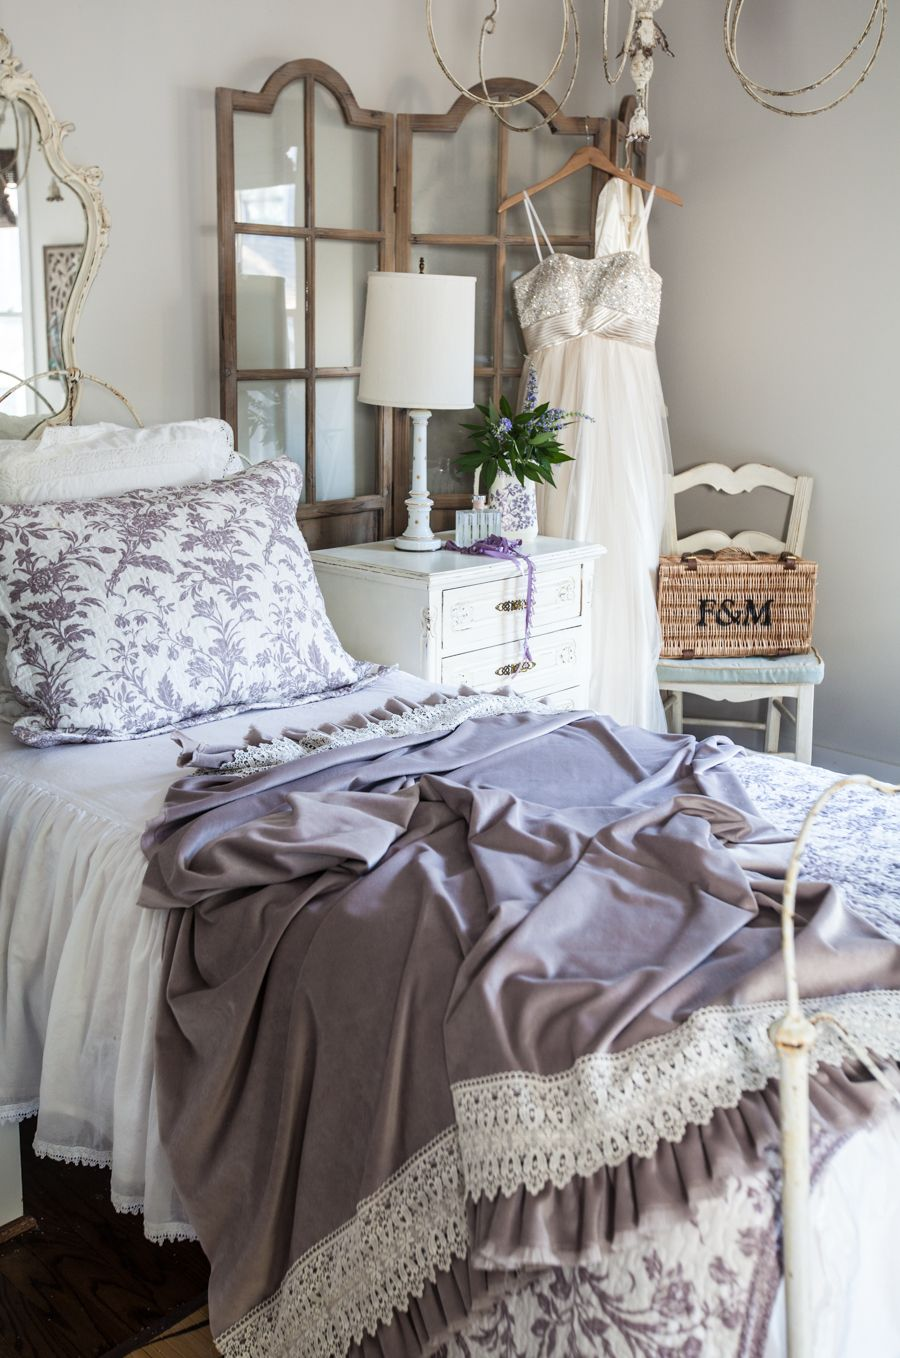 Adding Romance to Your Home | Farmhouse & country living | Chambre ...